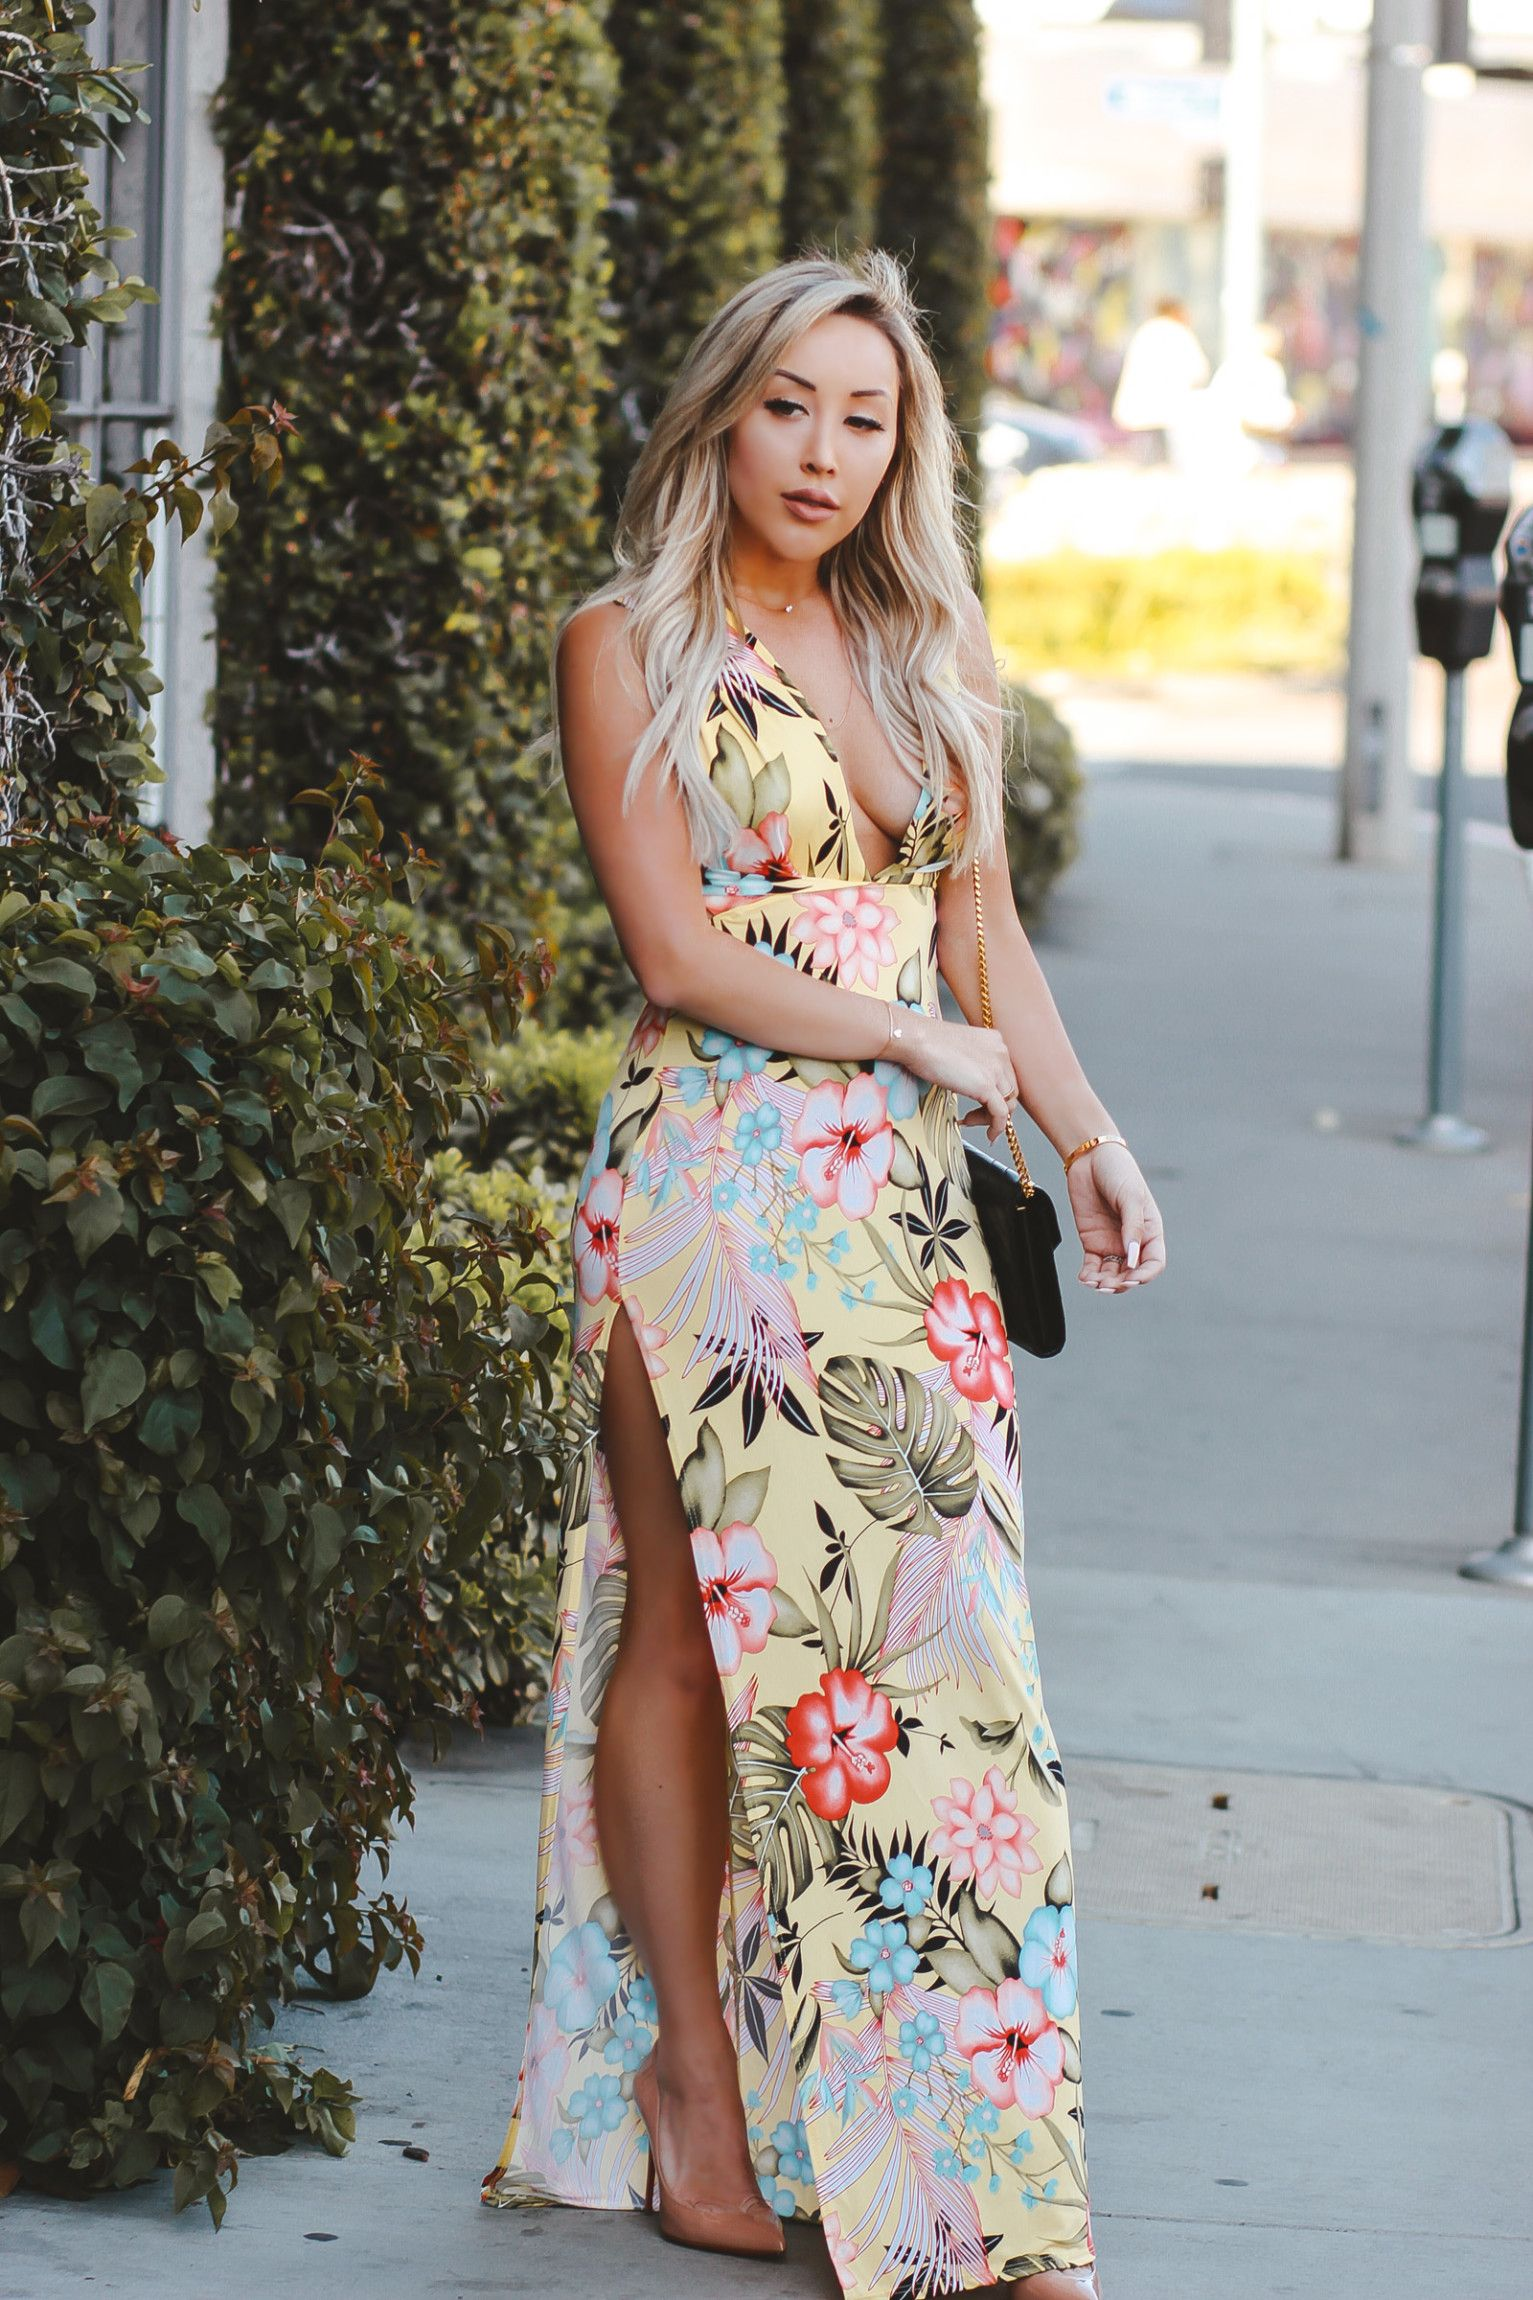 The Perfect Dress For Hawaii - Tropical Dress - Vacation